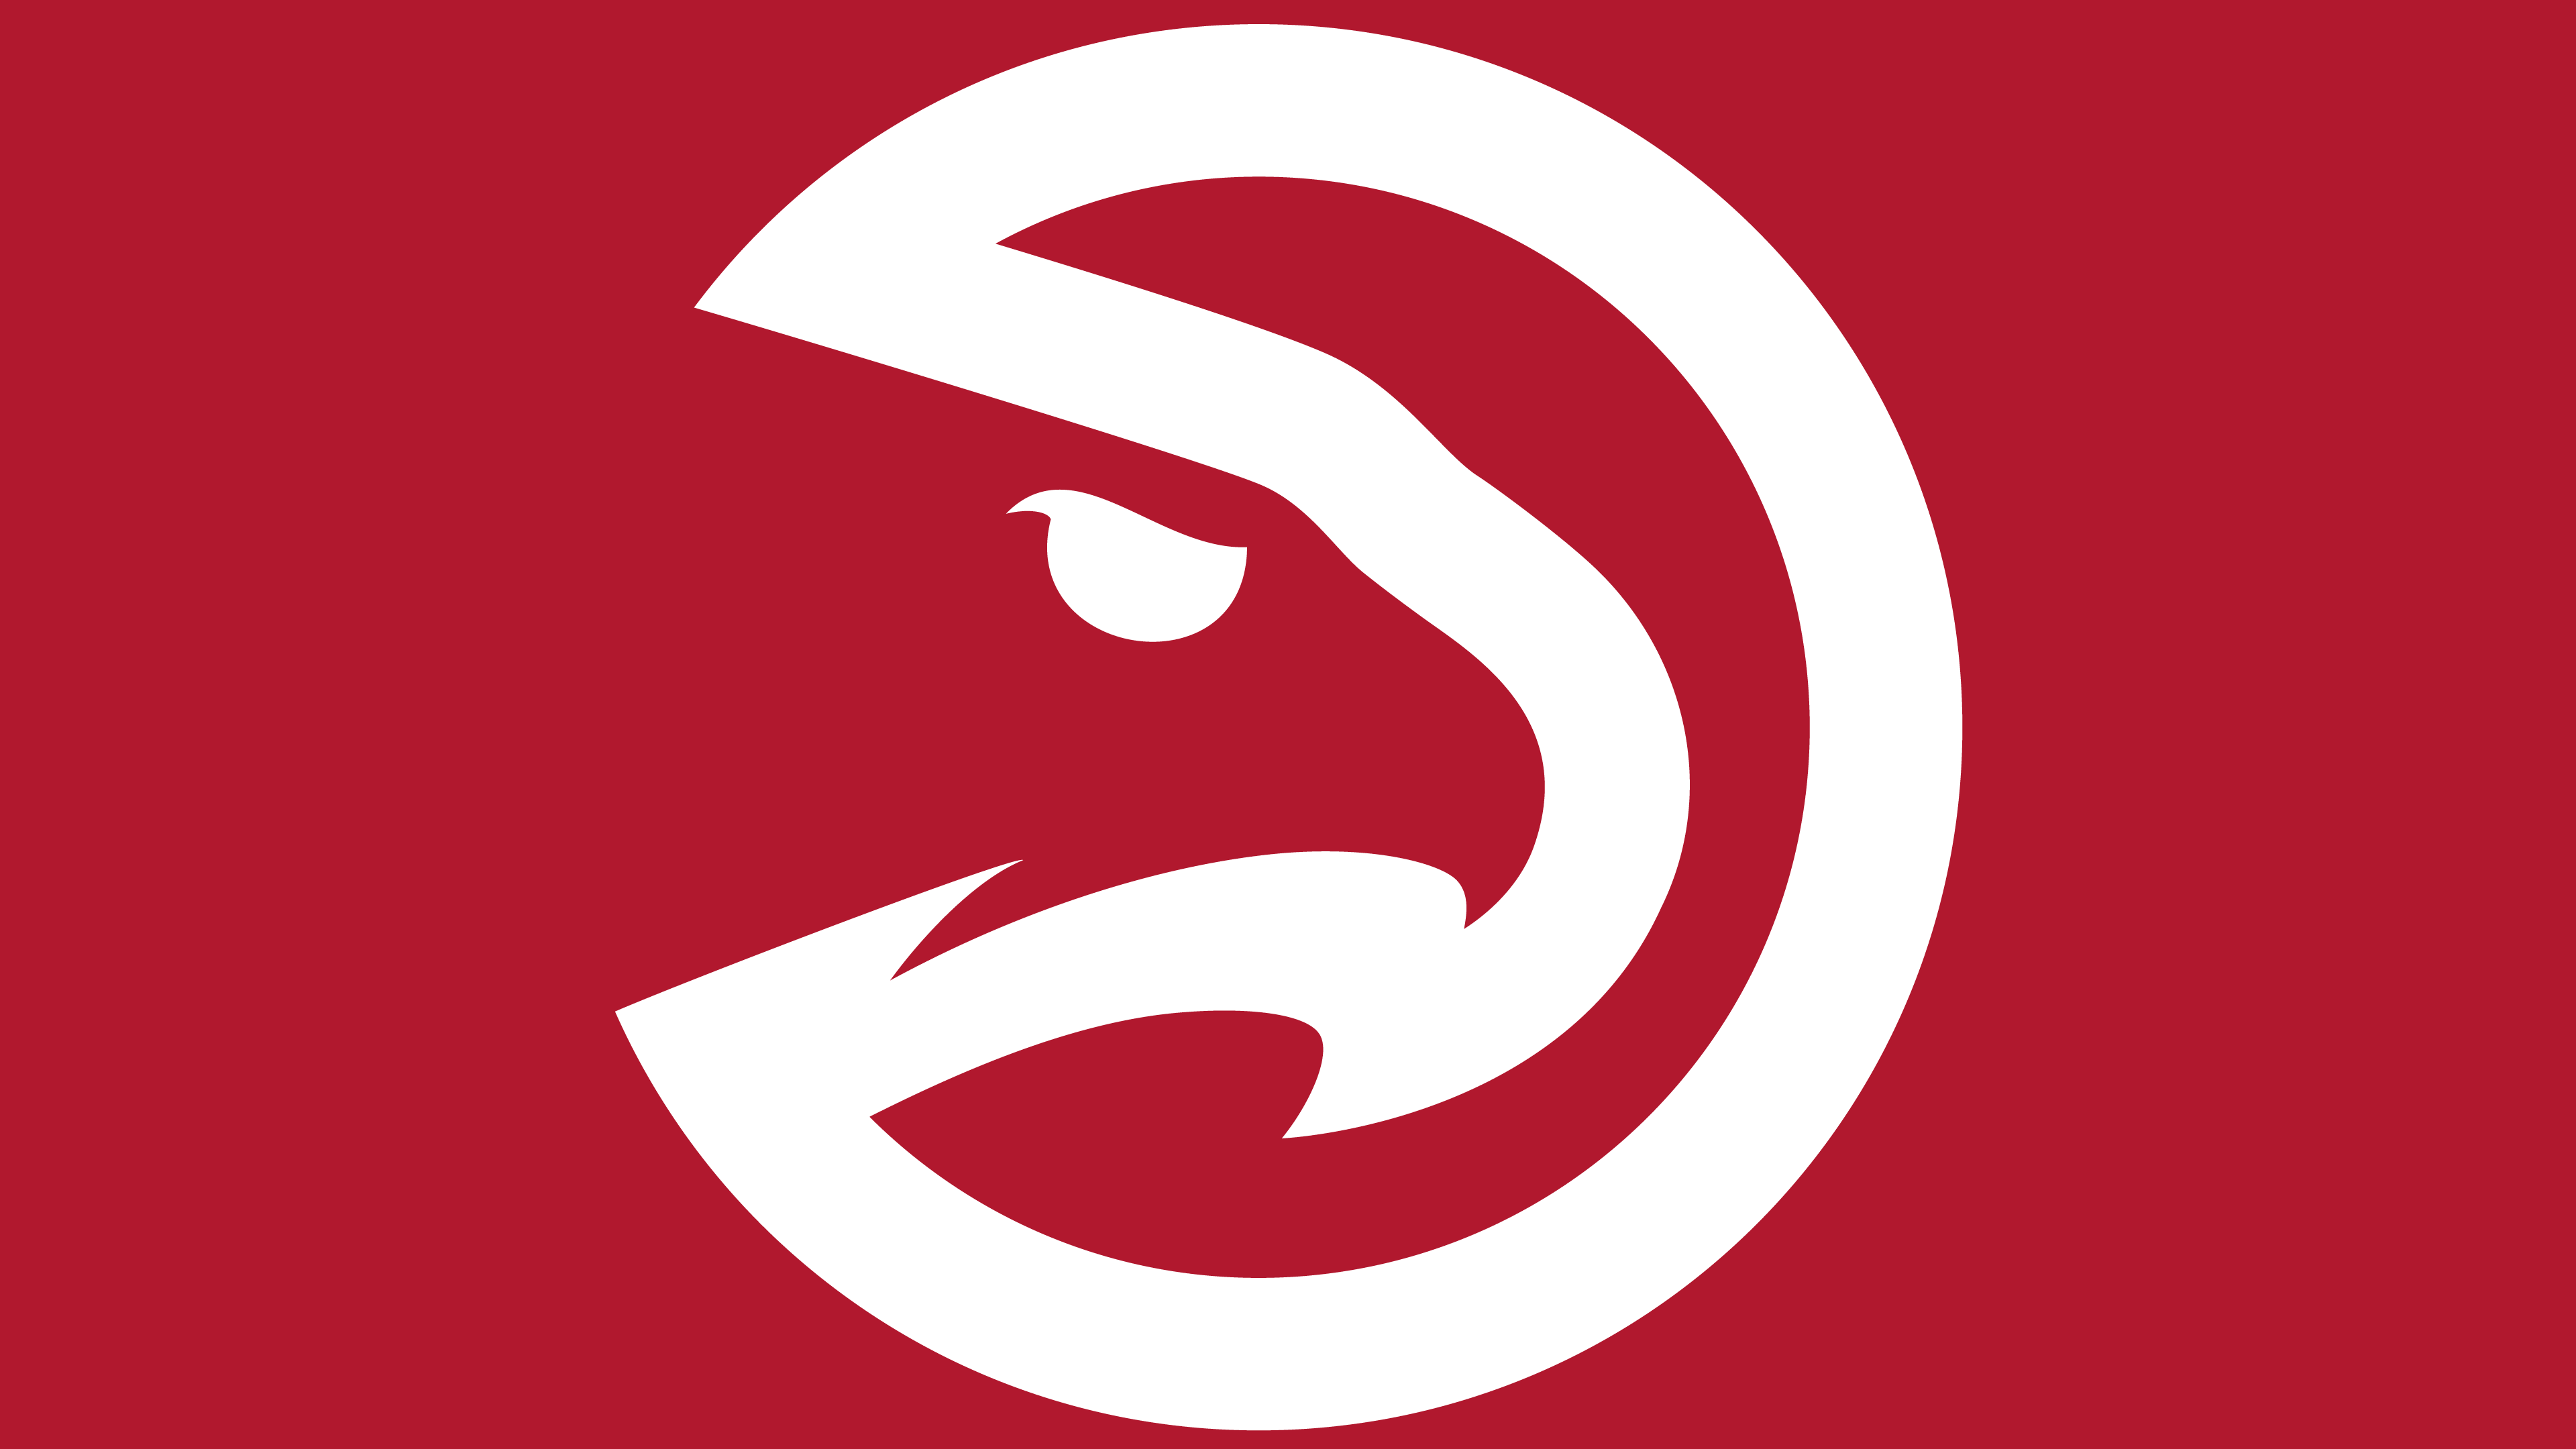 Atlanta Hawks Logo - Atlanta Hawks Logo - Interesting History of the Team Name and emblem